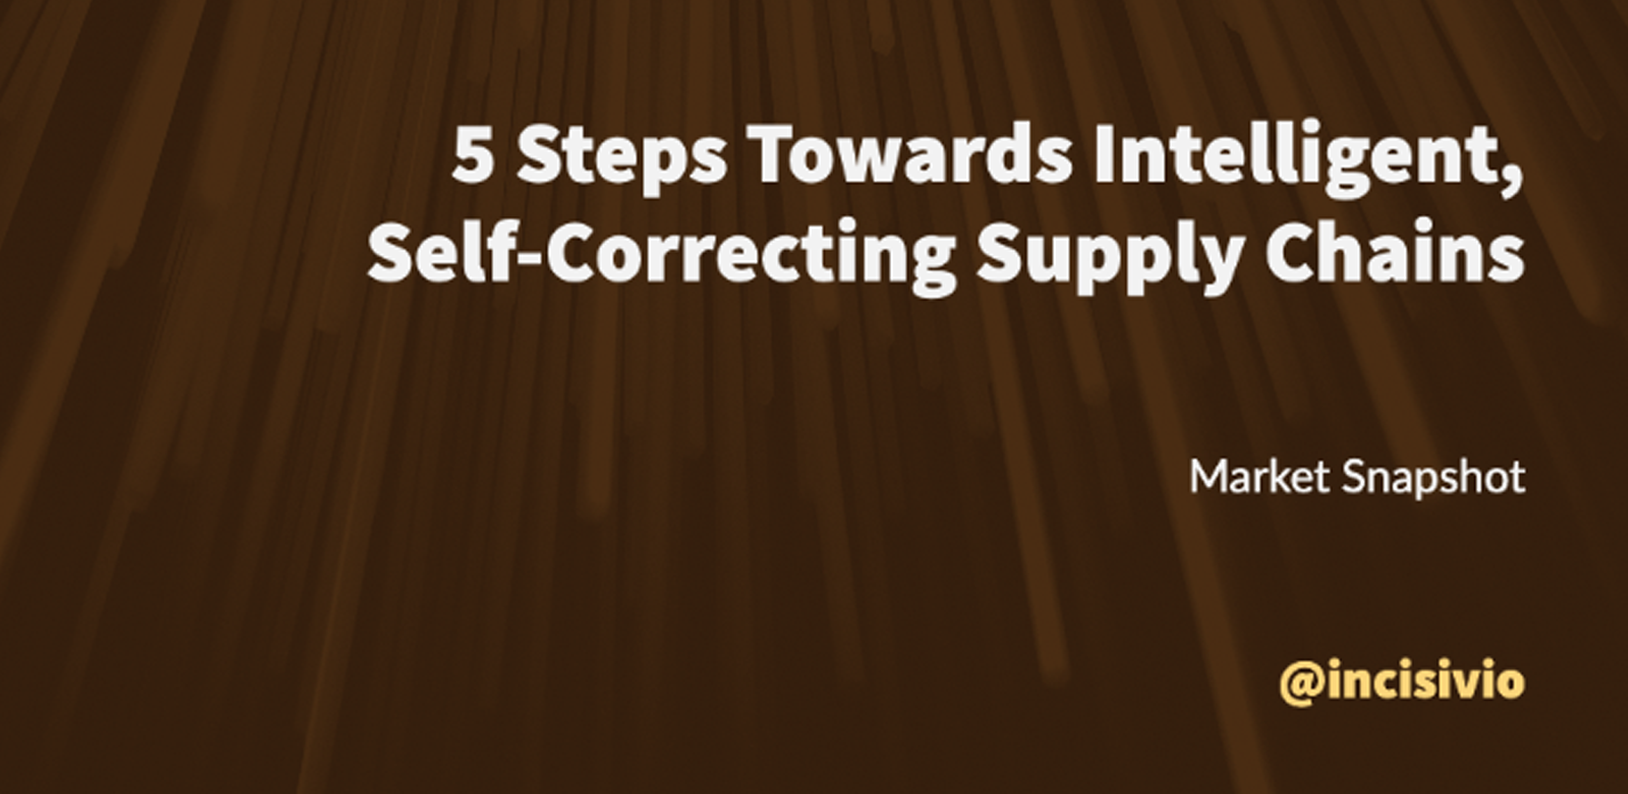 5 Steps Towards Intelligent, Self-Correcting Supply Chains